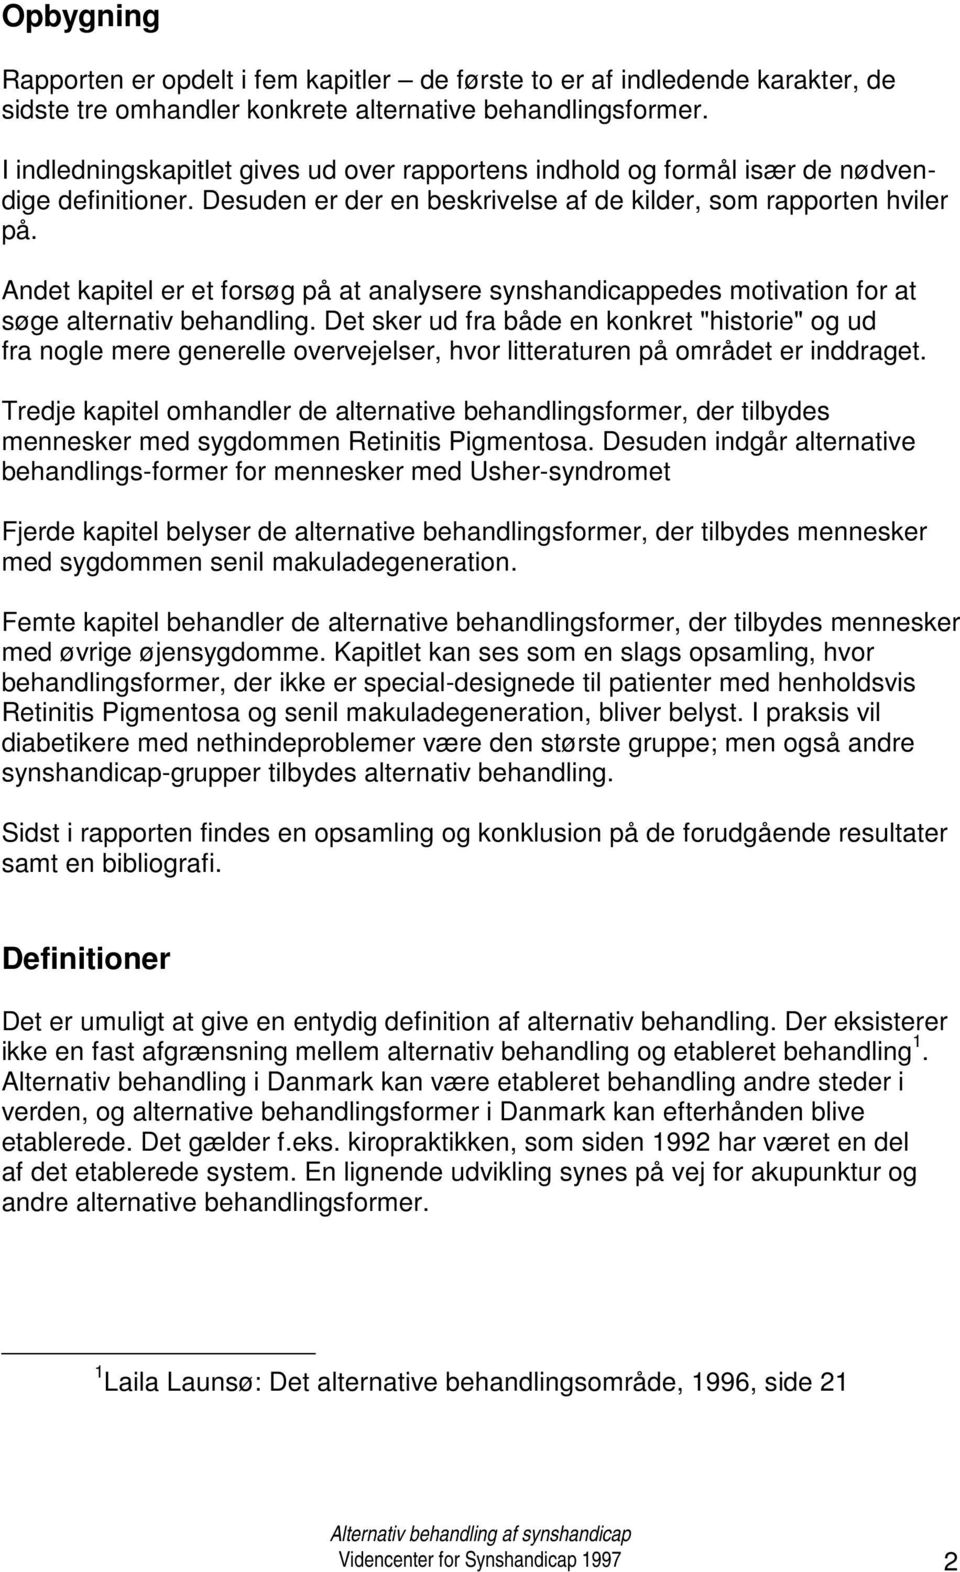 Andet kapitel er et forsøg på at analysere synshandicappedes motivation for at søge alternativ behandling.